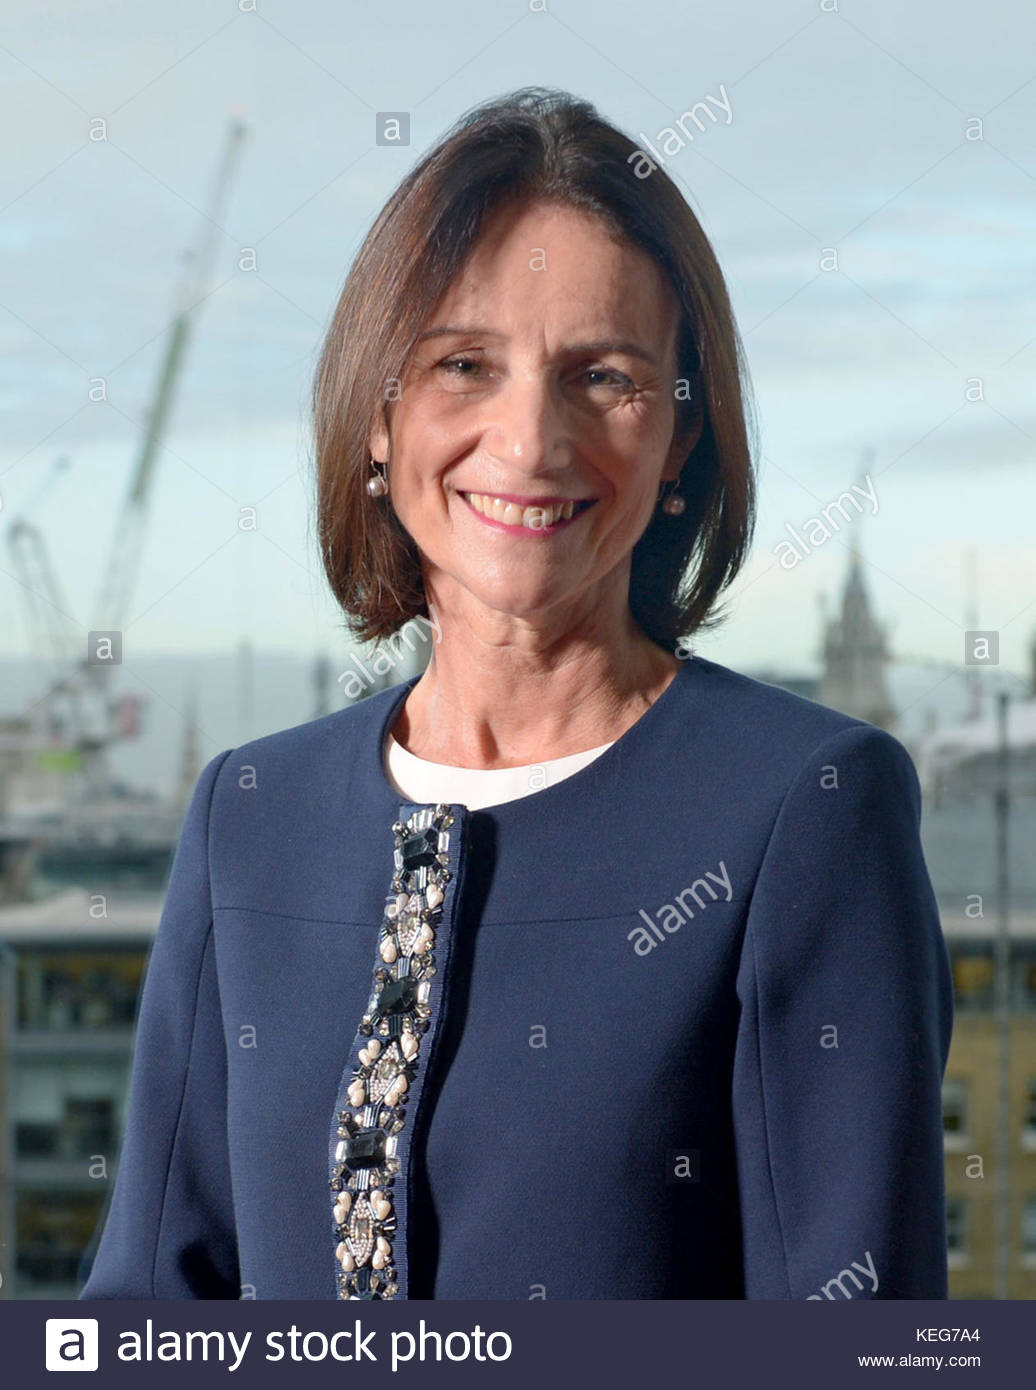 File photo dated 16/11/2015 of CBI's director-general Carolyn Fairbairn who has reacted to the limited progress - Stock Image